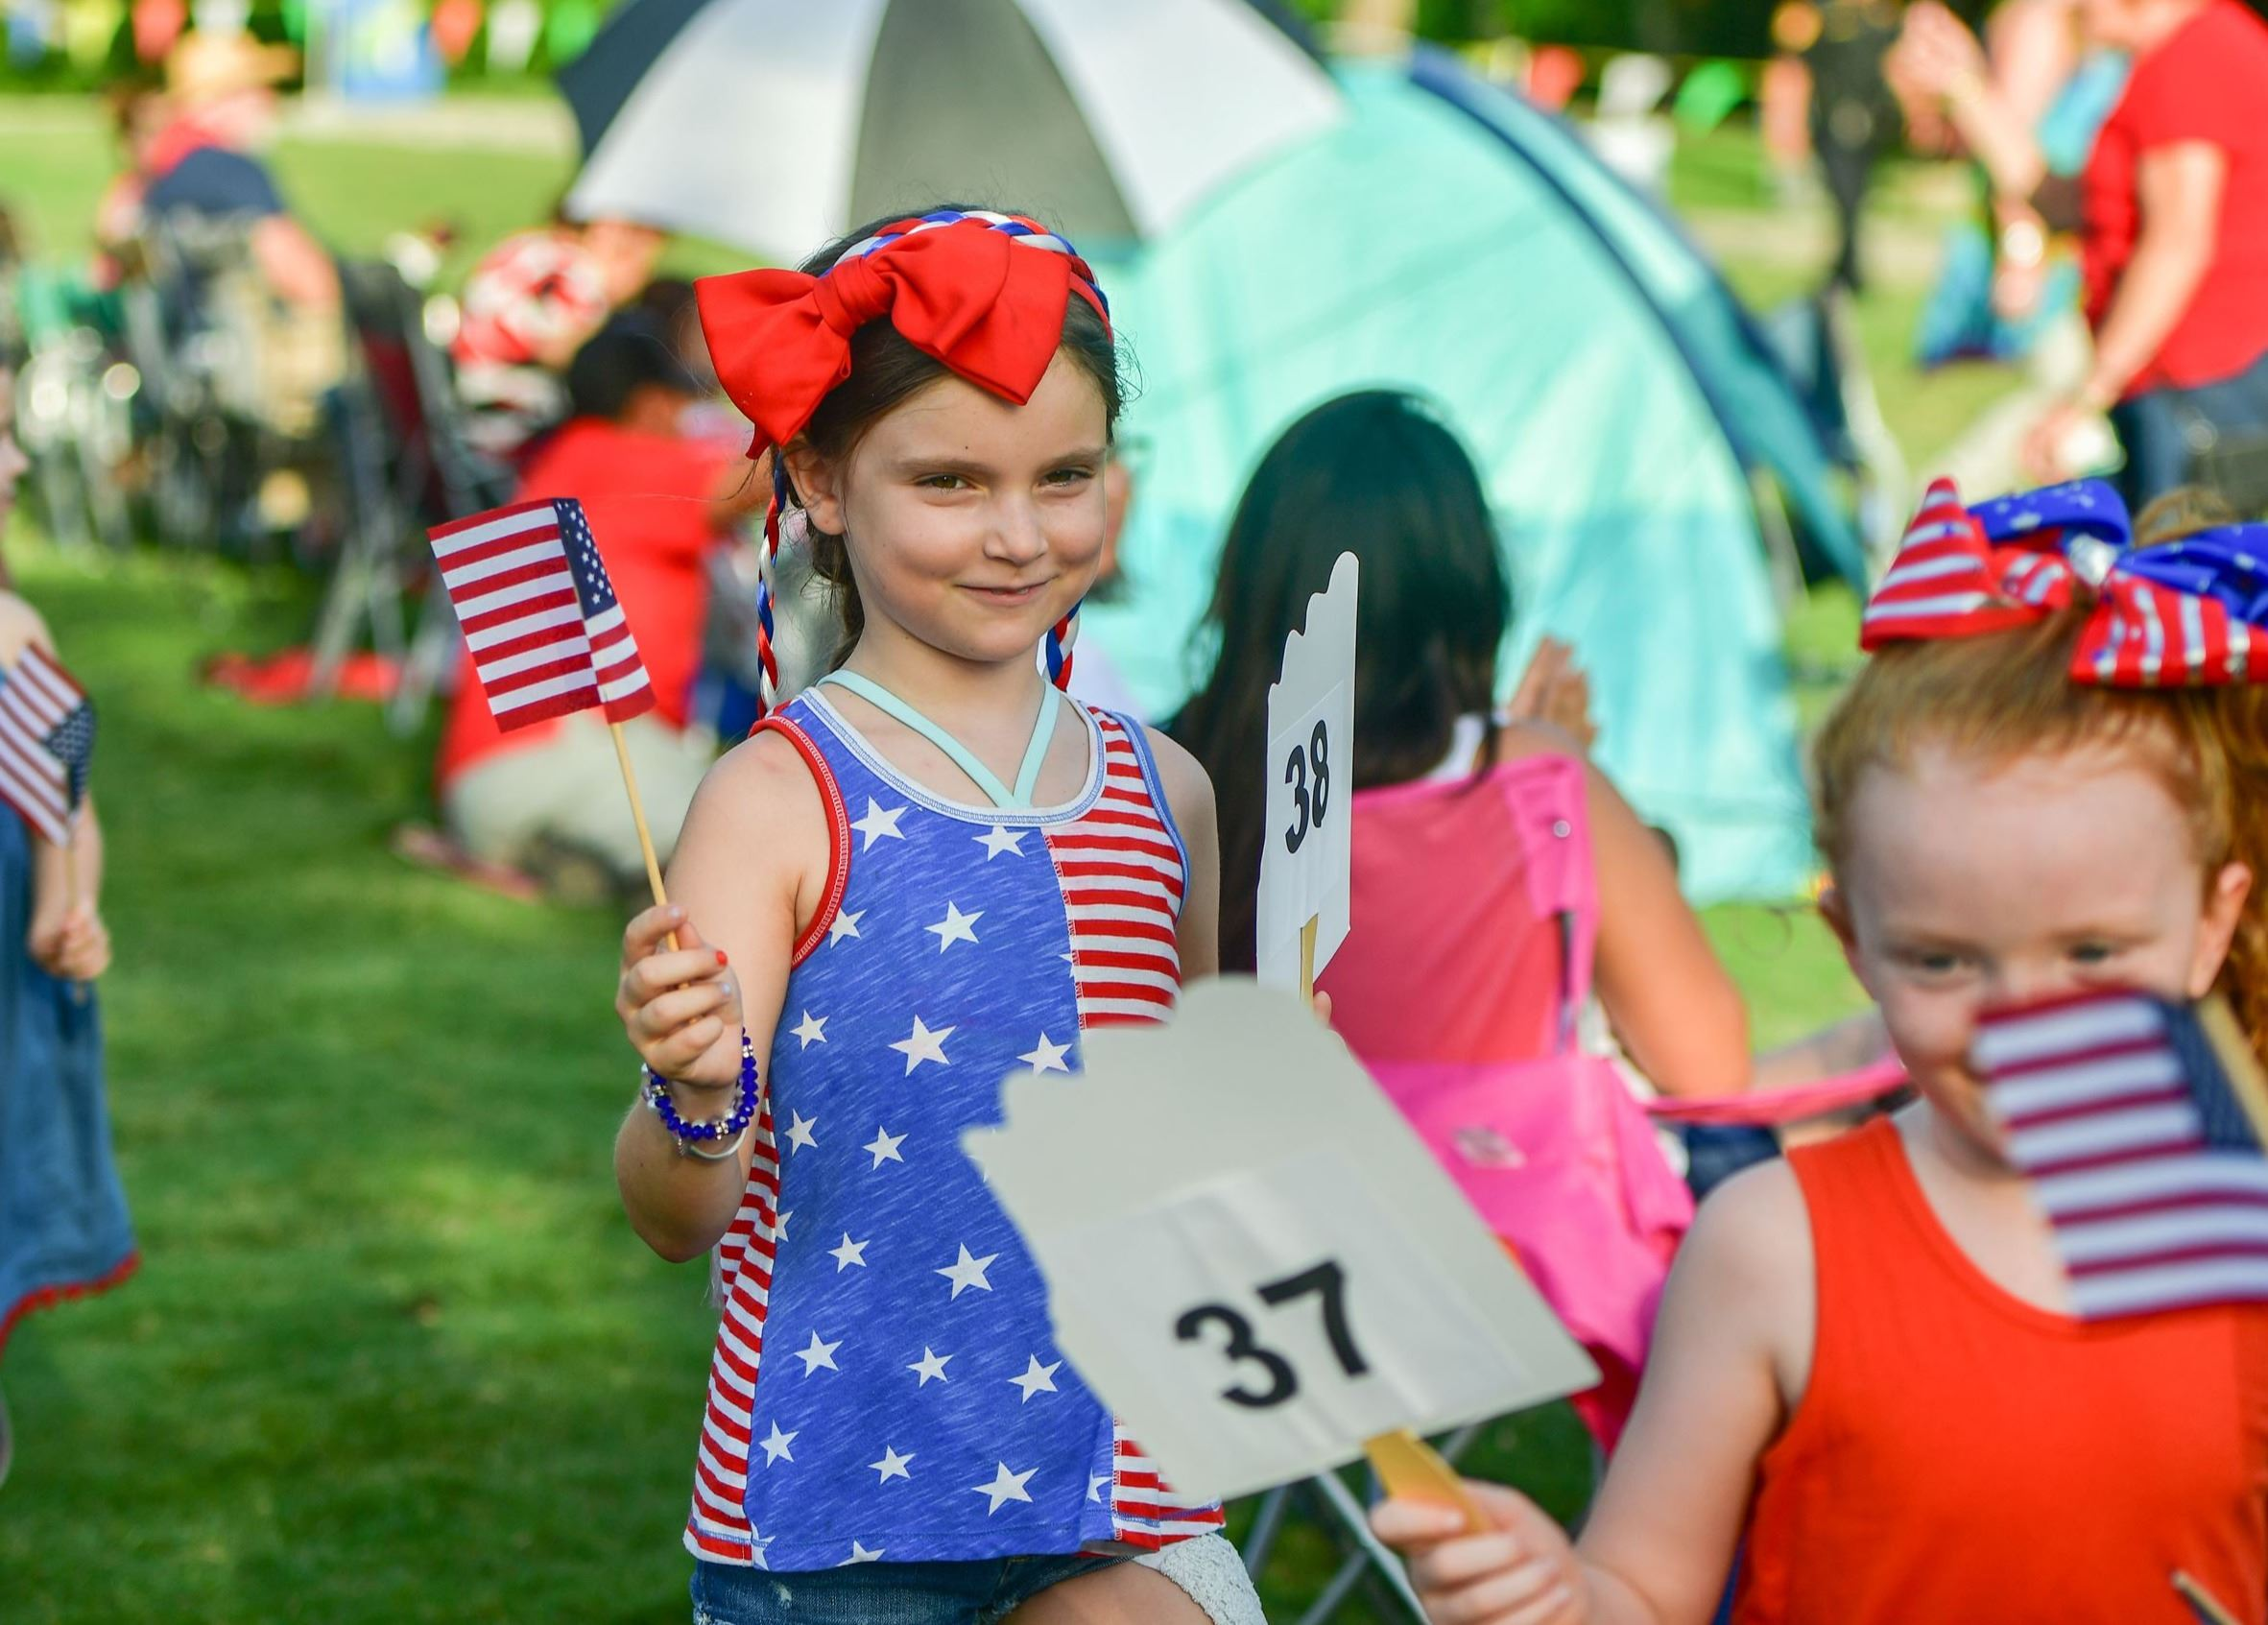 Photo of children standing in line wearing red, white, and blue outfits from previous SummerFest pat